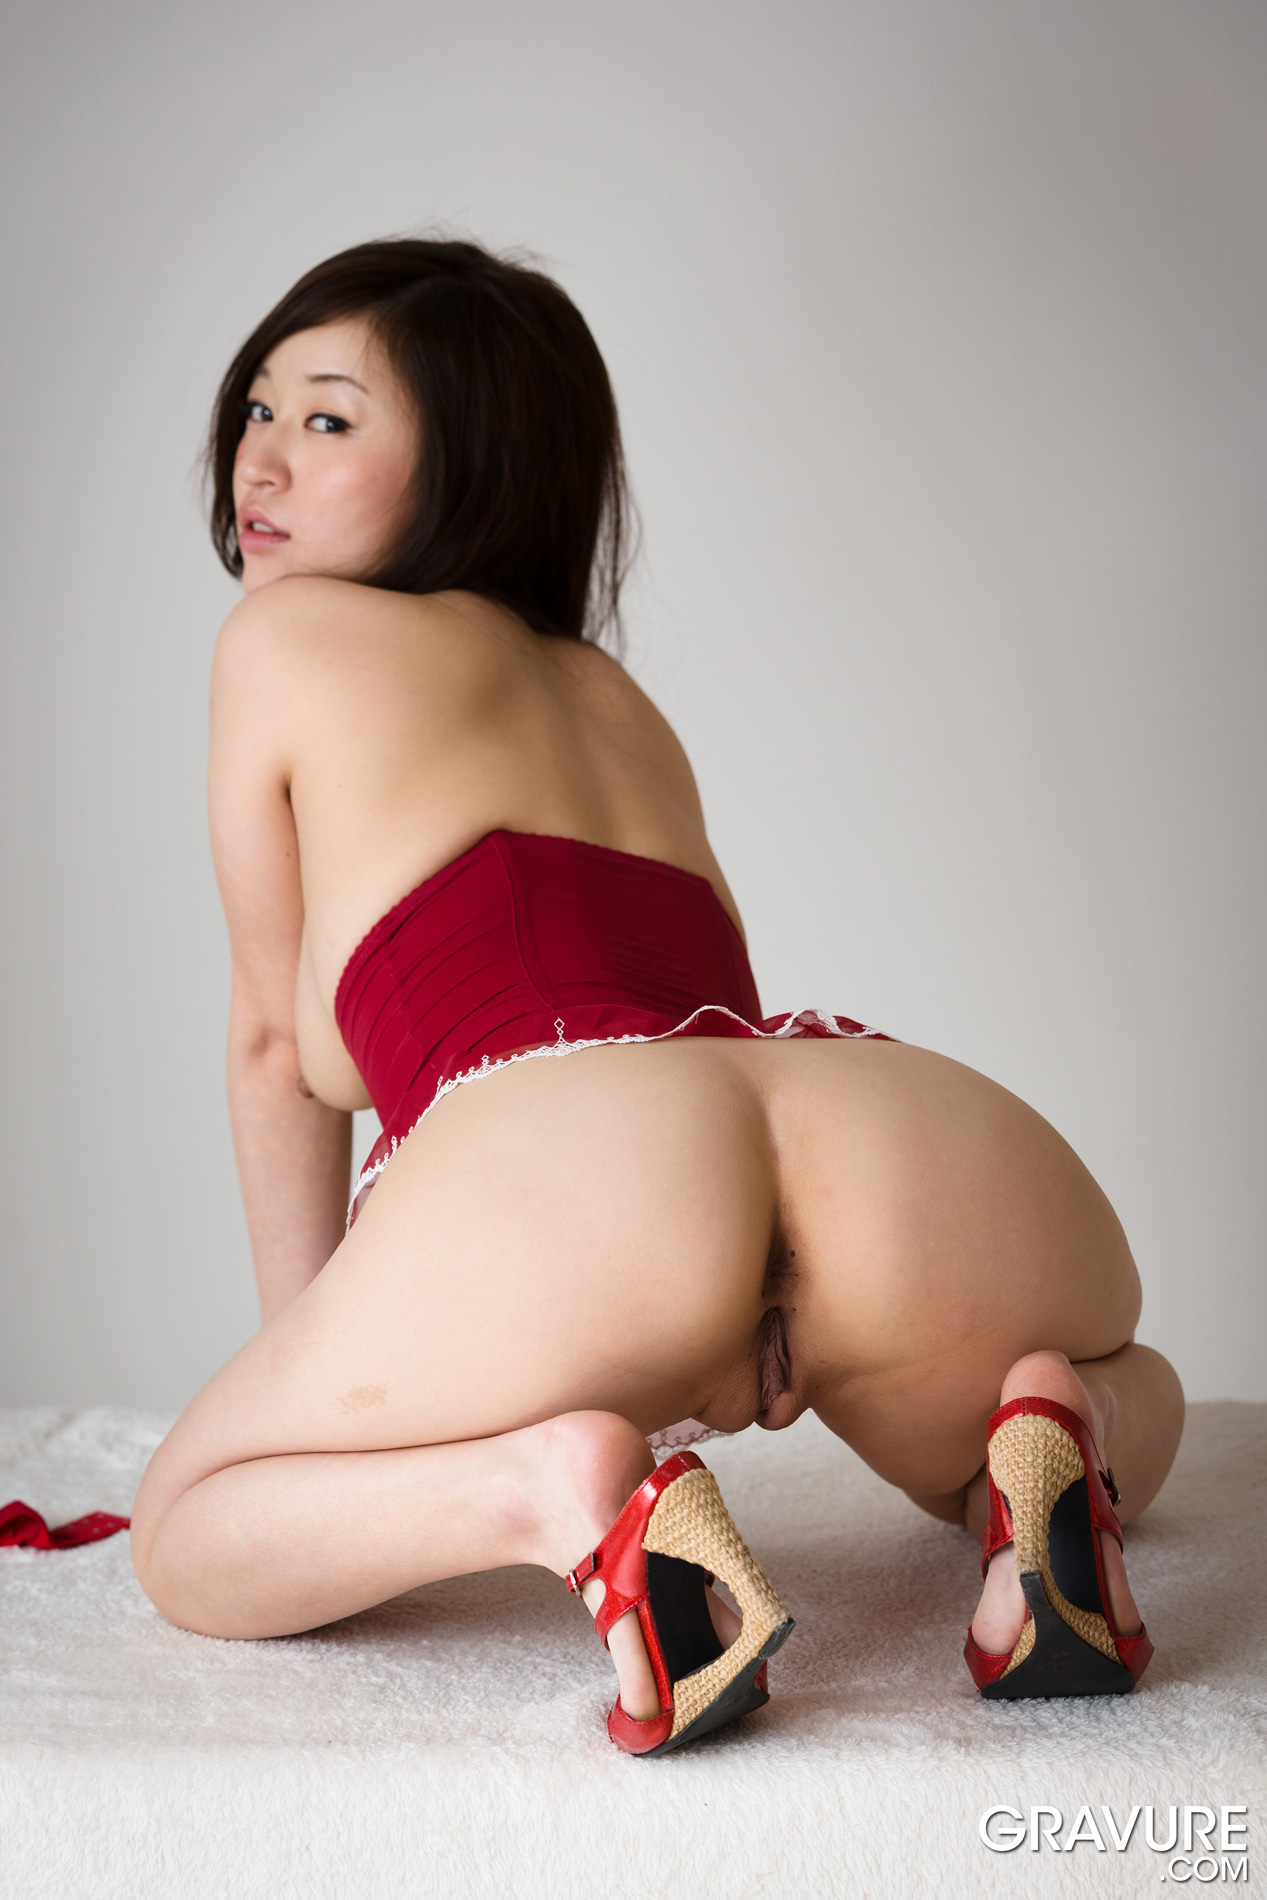 gravure.com nude Japanese beauty idol uncensored nude